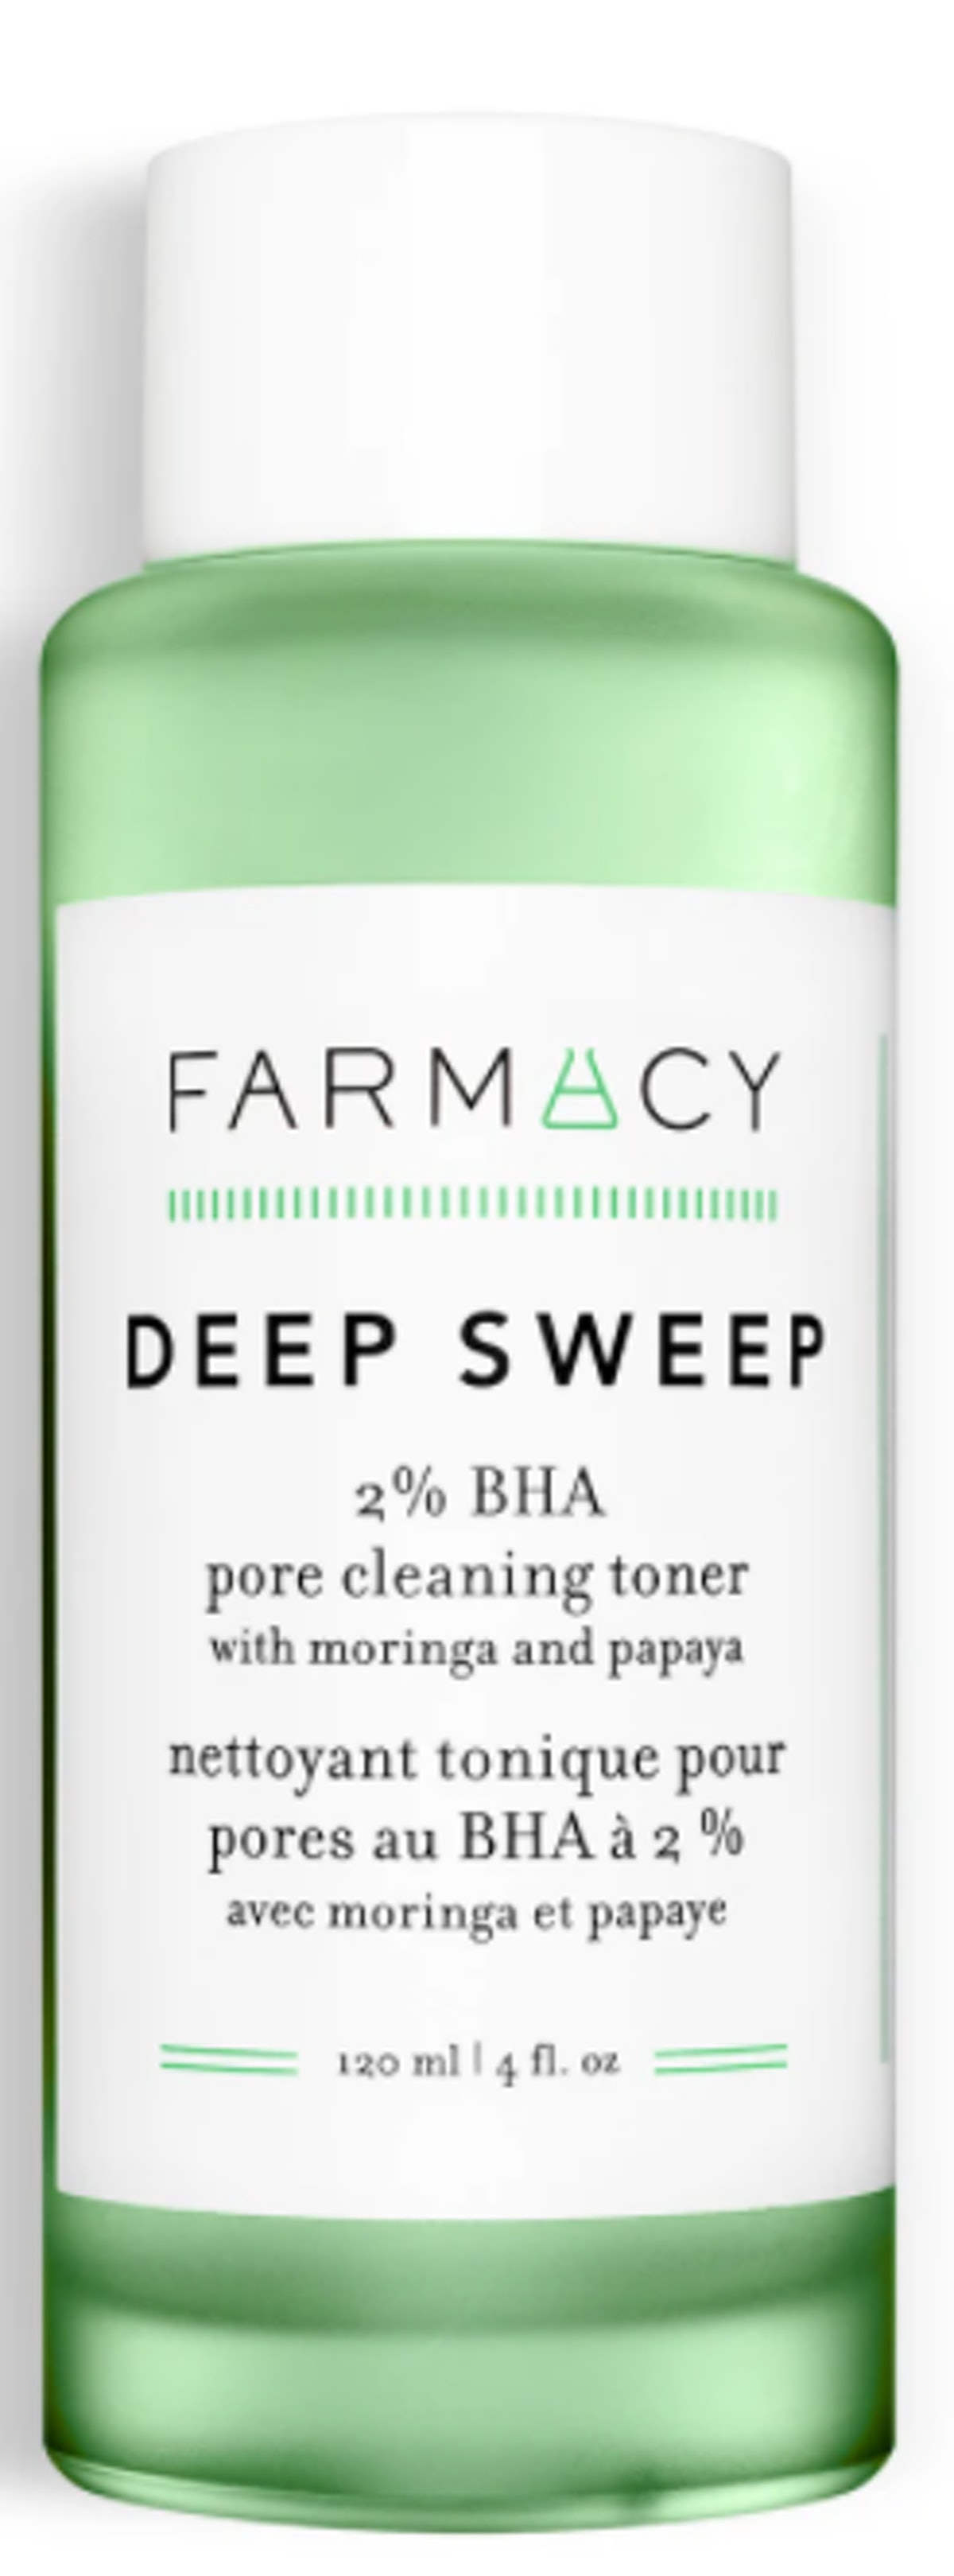 Deep Sweep Pore Cleaning Toner